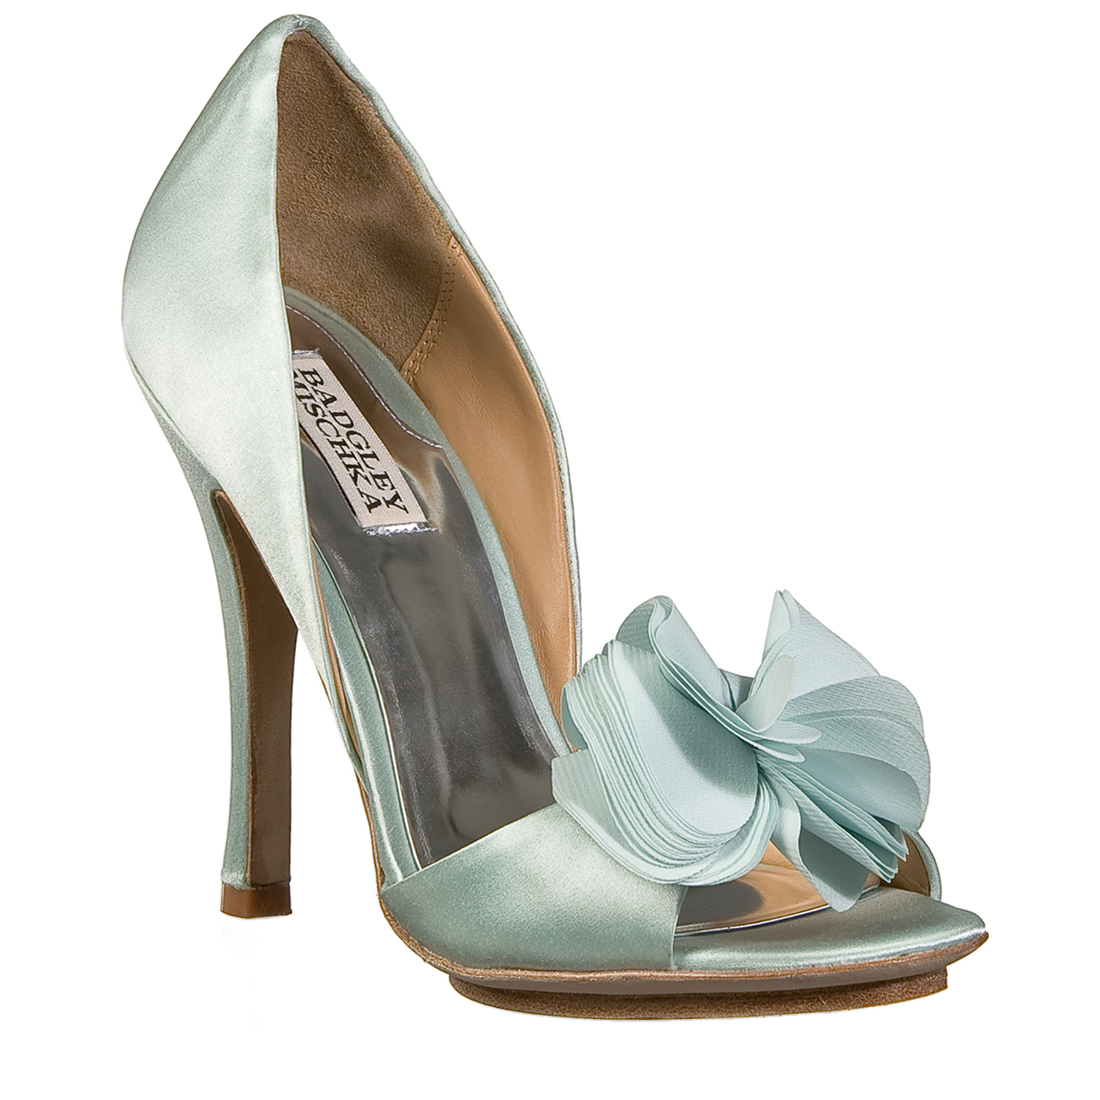 ... in Greece the ultimate evening and bridal shoes by Badgley Mischka